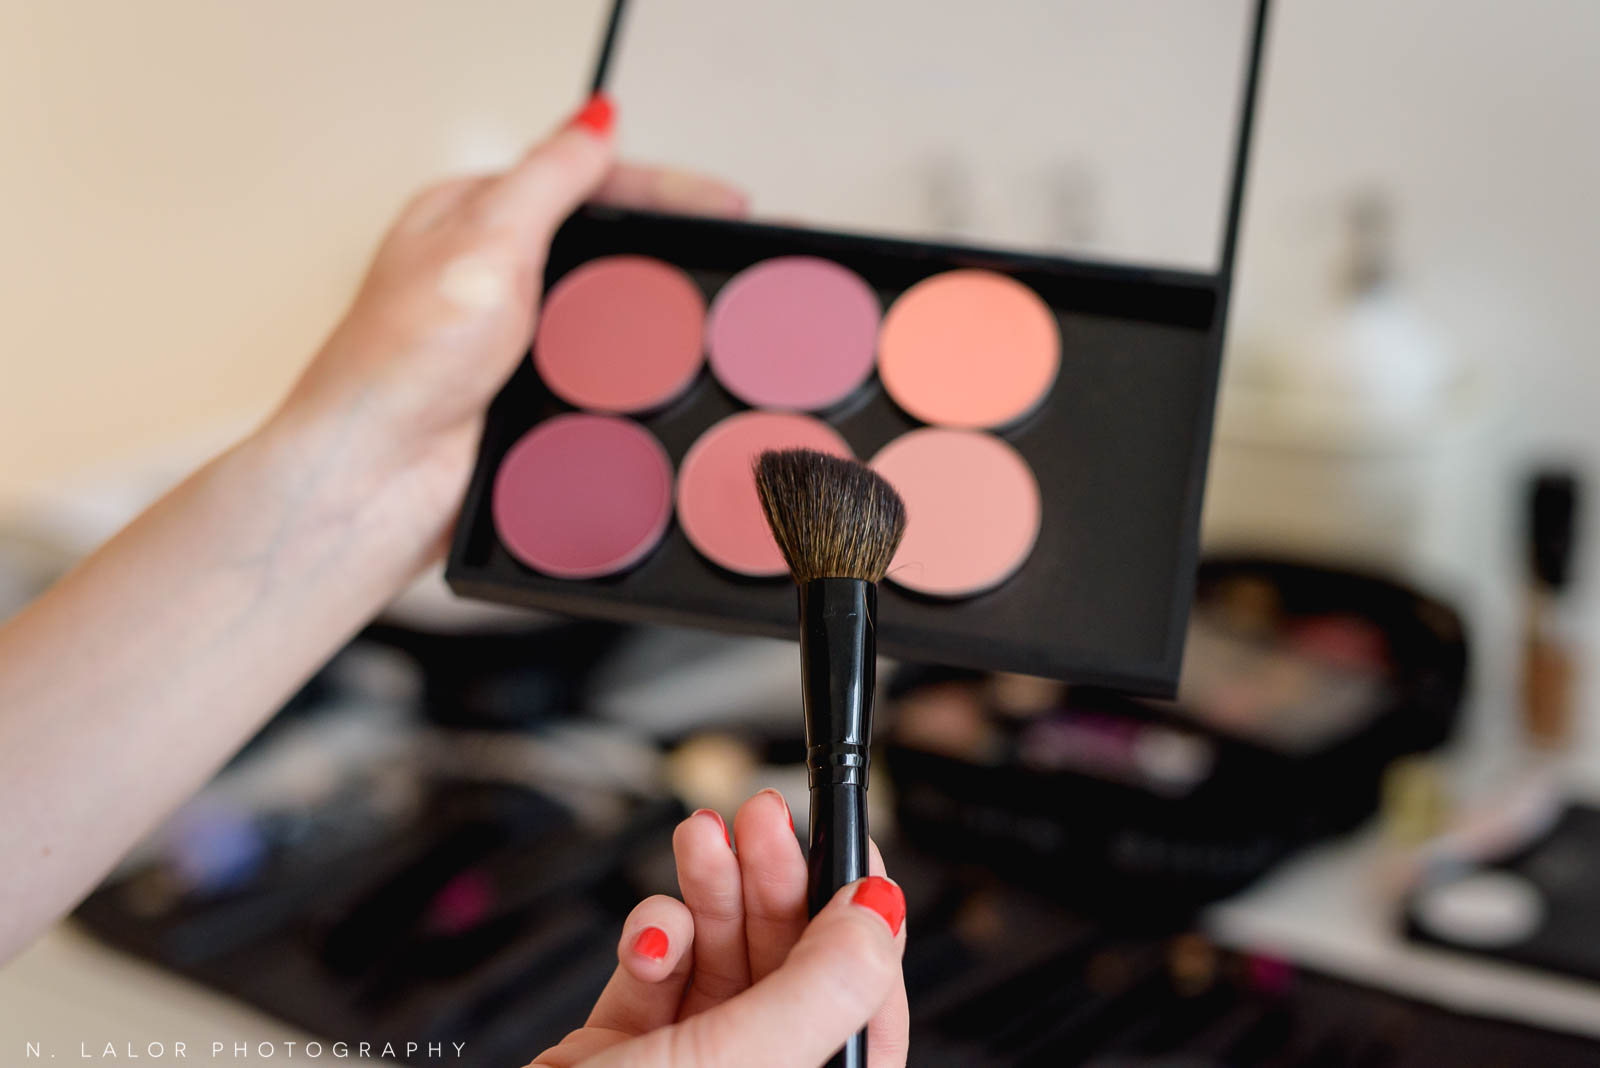 Recommended blush colors and brush shape. Makeup tutorial. Photo by N. Lalor Photography, makeup tips by Haus of Pretty of Westport CT.